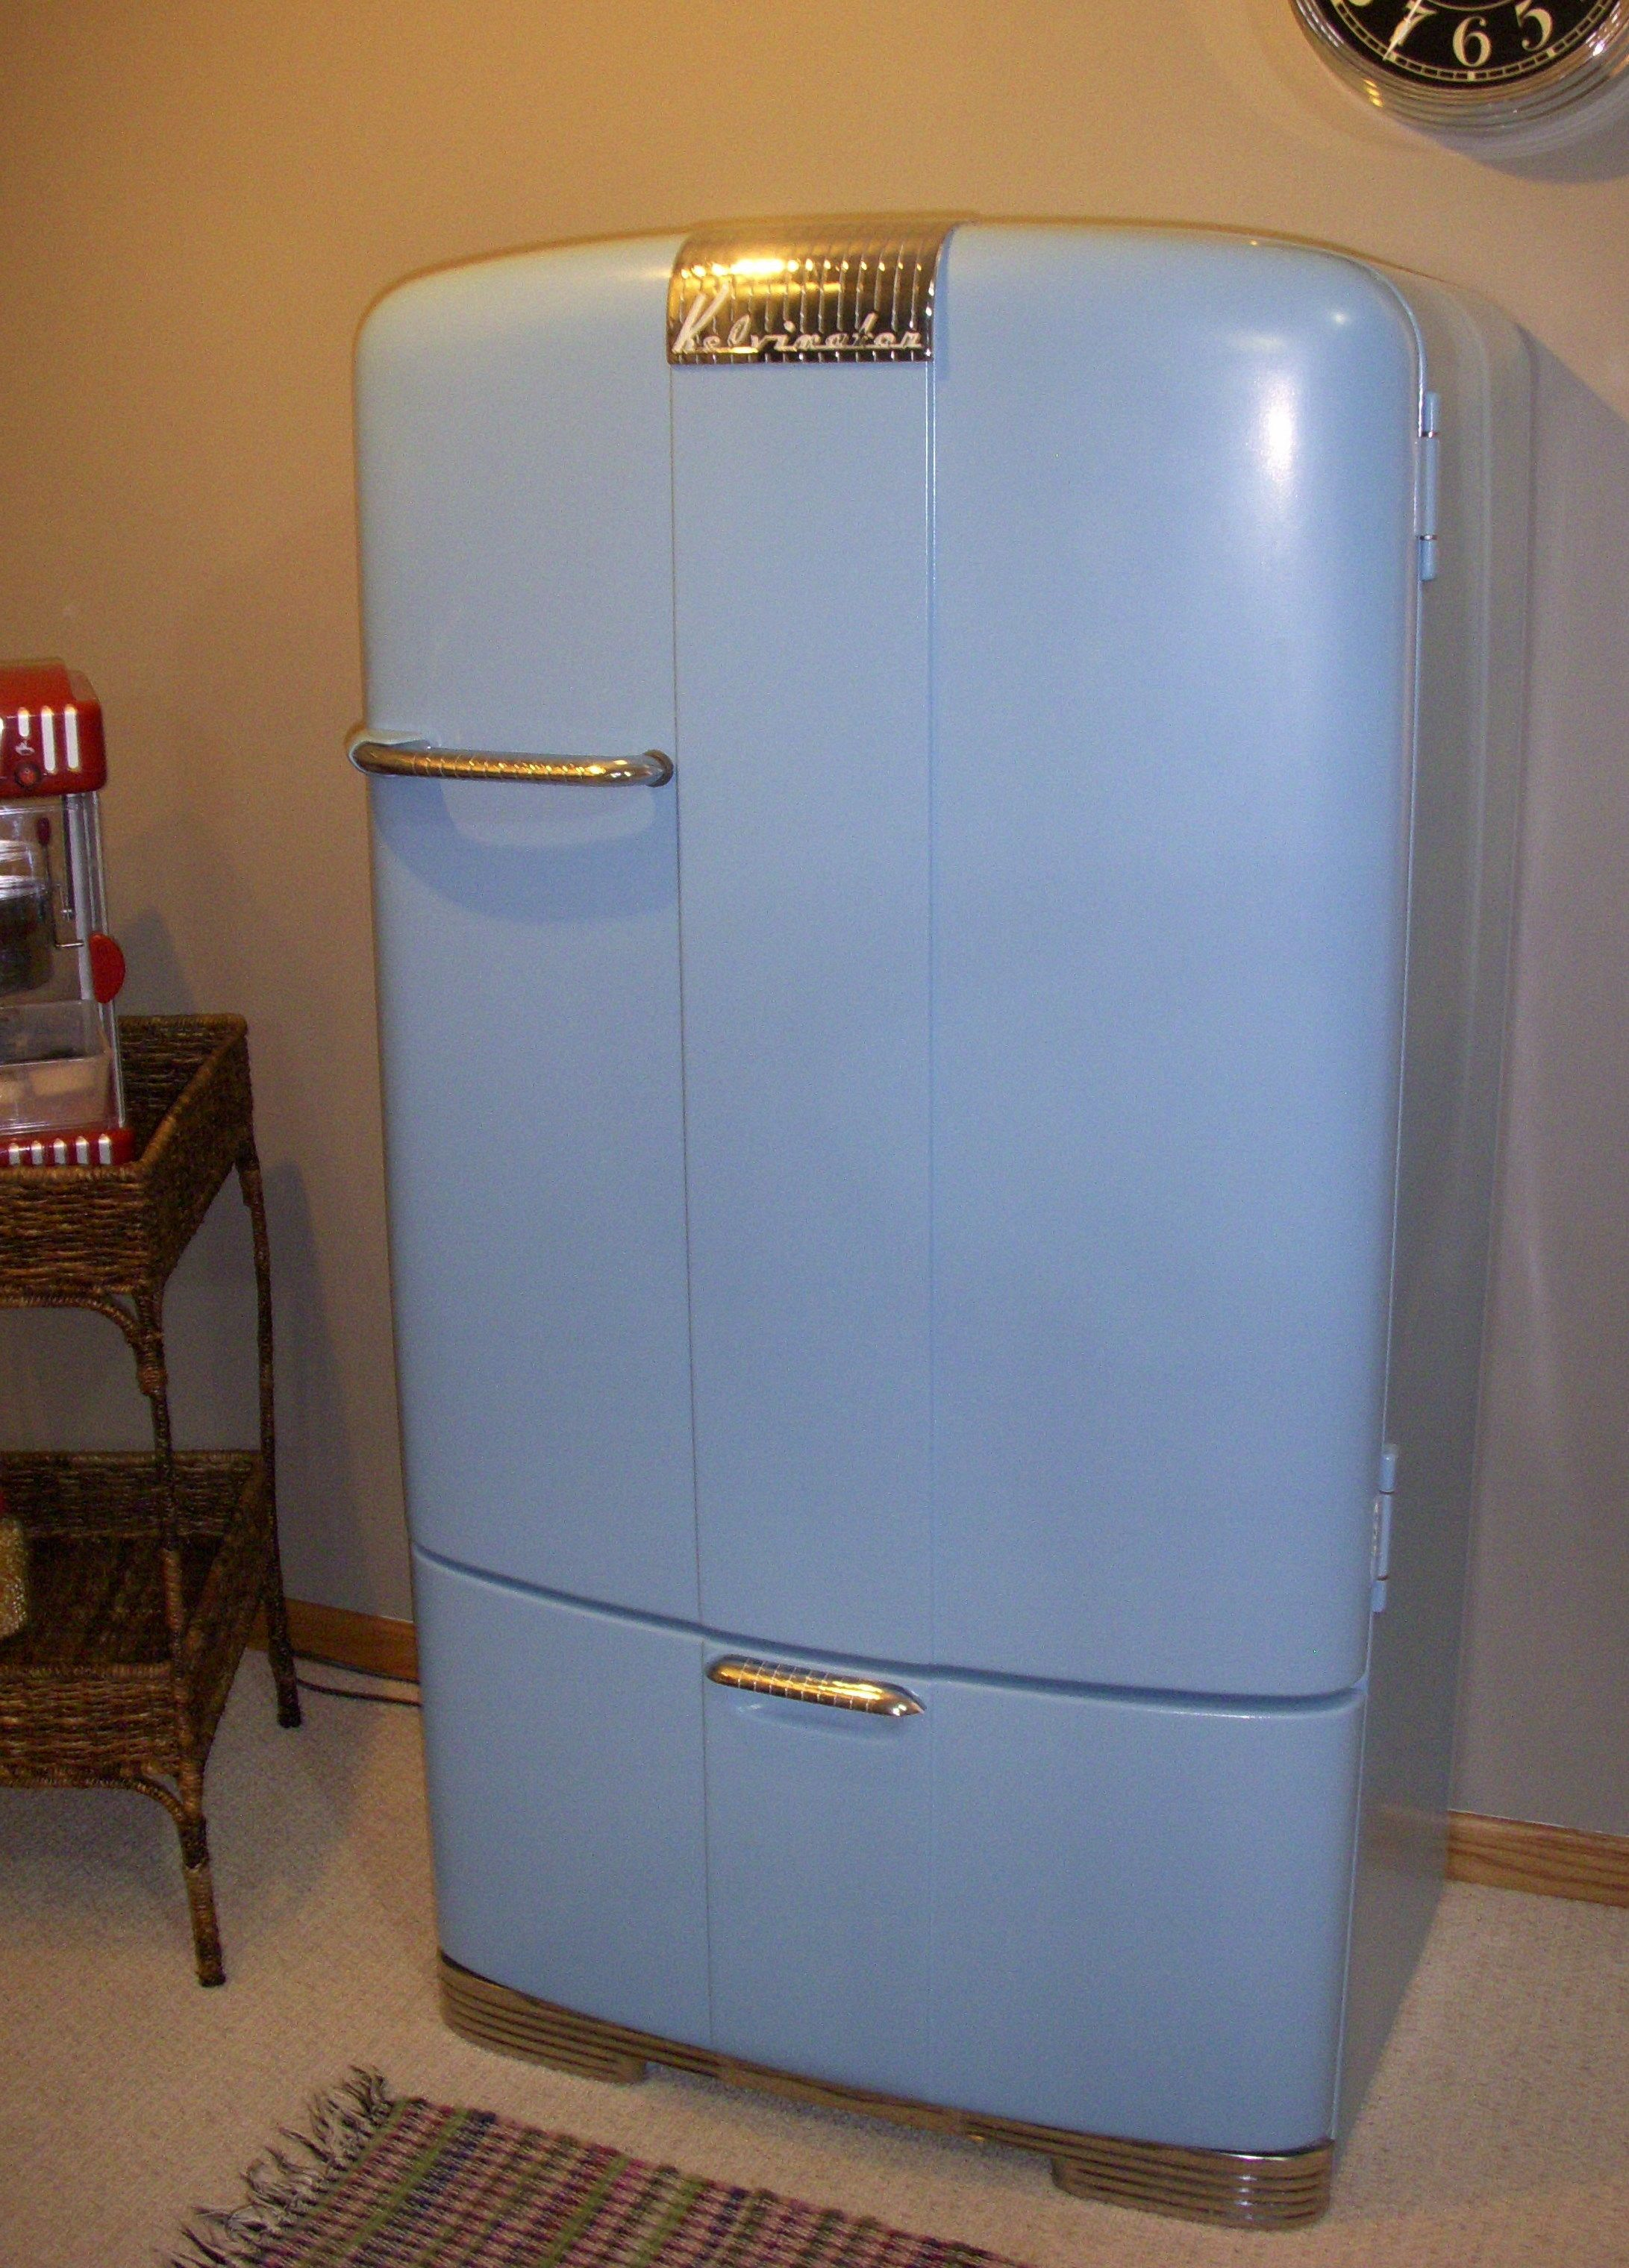 Old Kelvinator refrigerator ~ We had a white one way back when ...